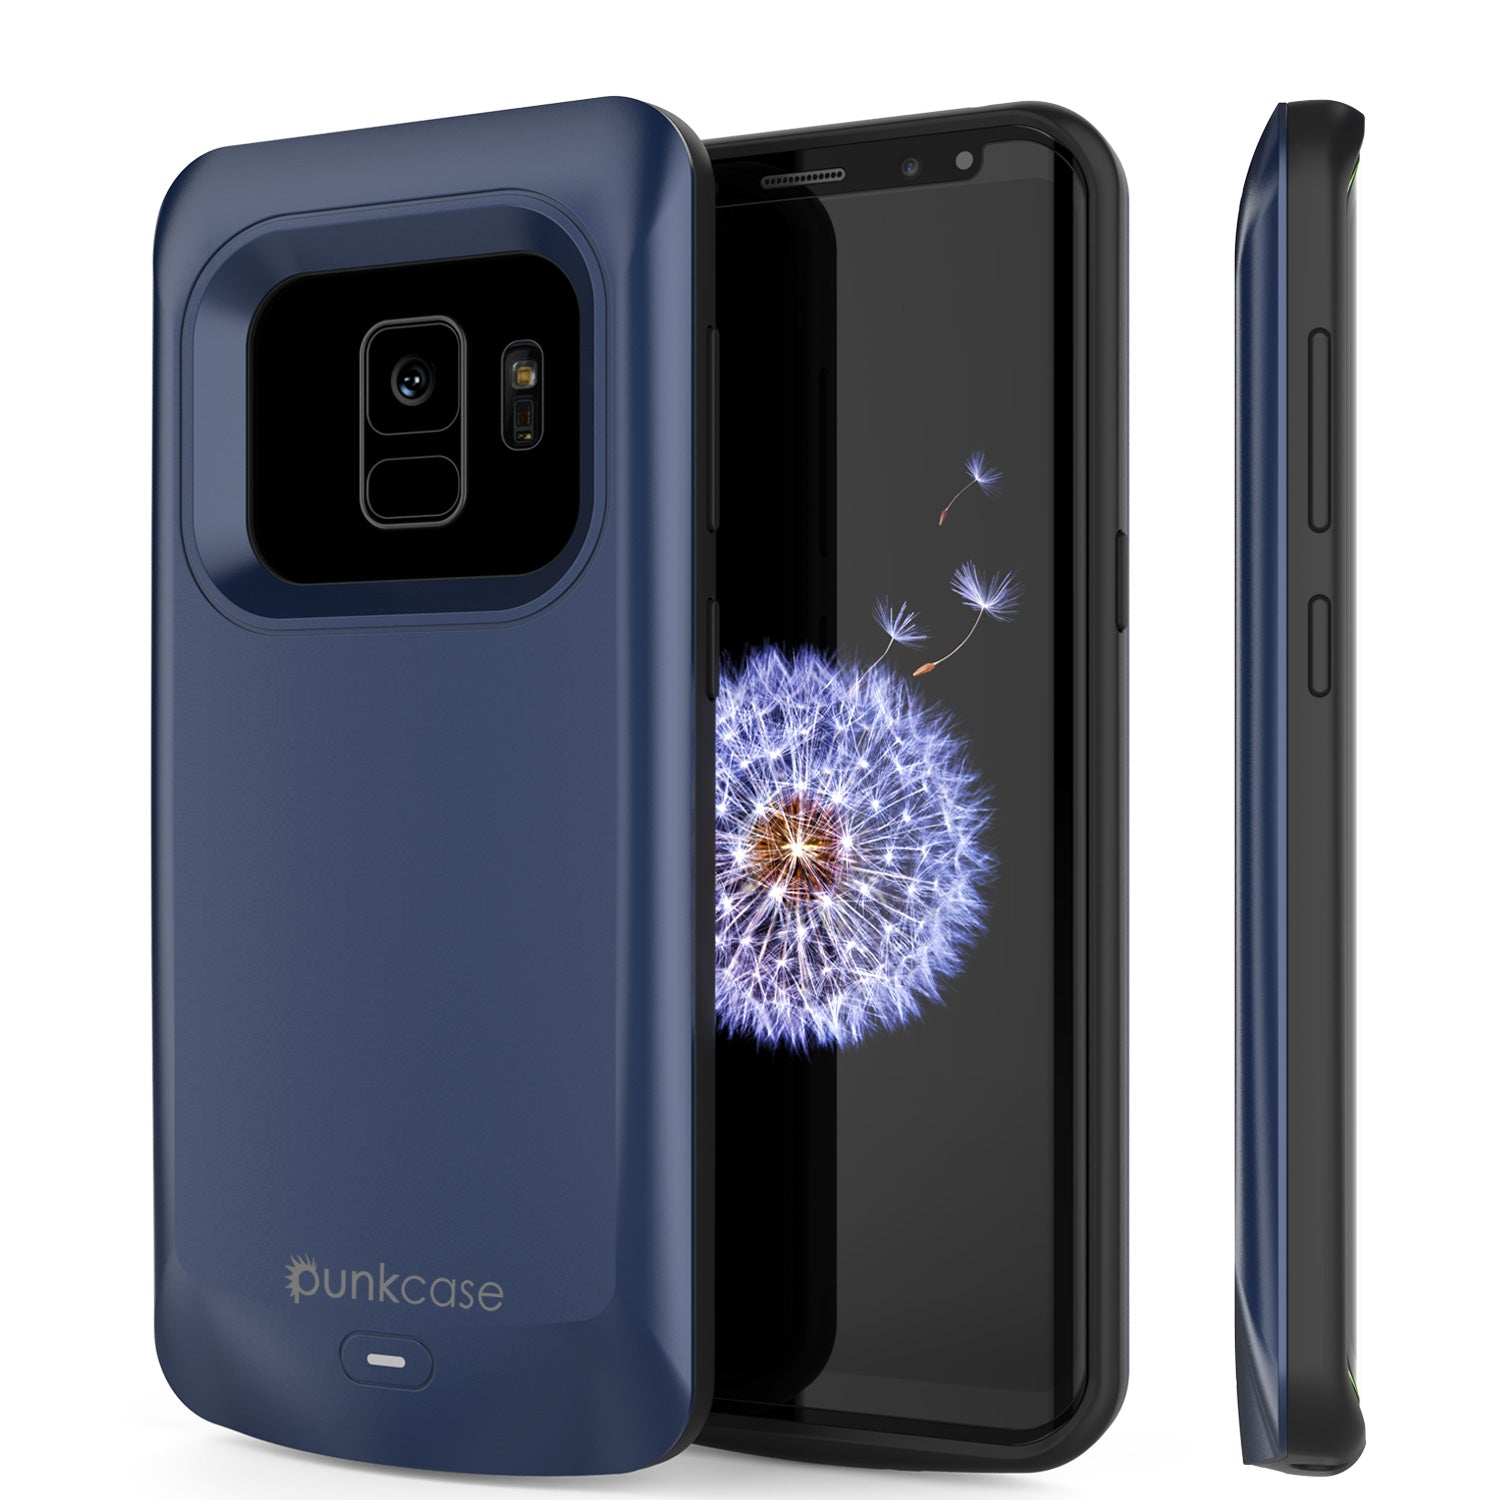 Galaxy S9 Battery Case, PunkJuice 5000mAH Fast Charging Power Bank Case [Navy]